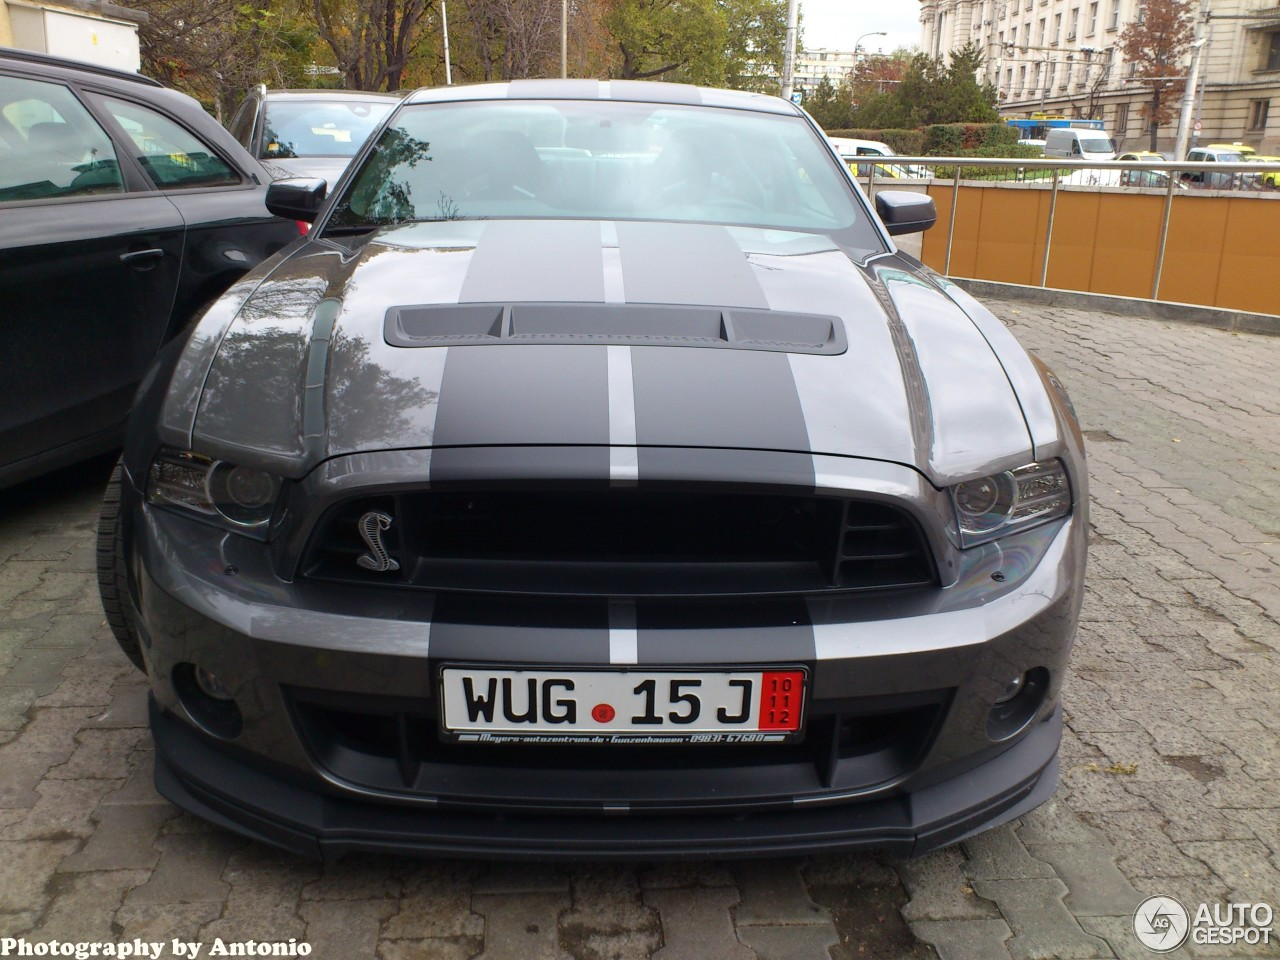 Ford Mustang Shelby Gt500 2013 27 November 2012 Autogespot